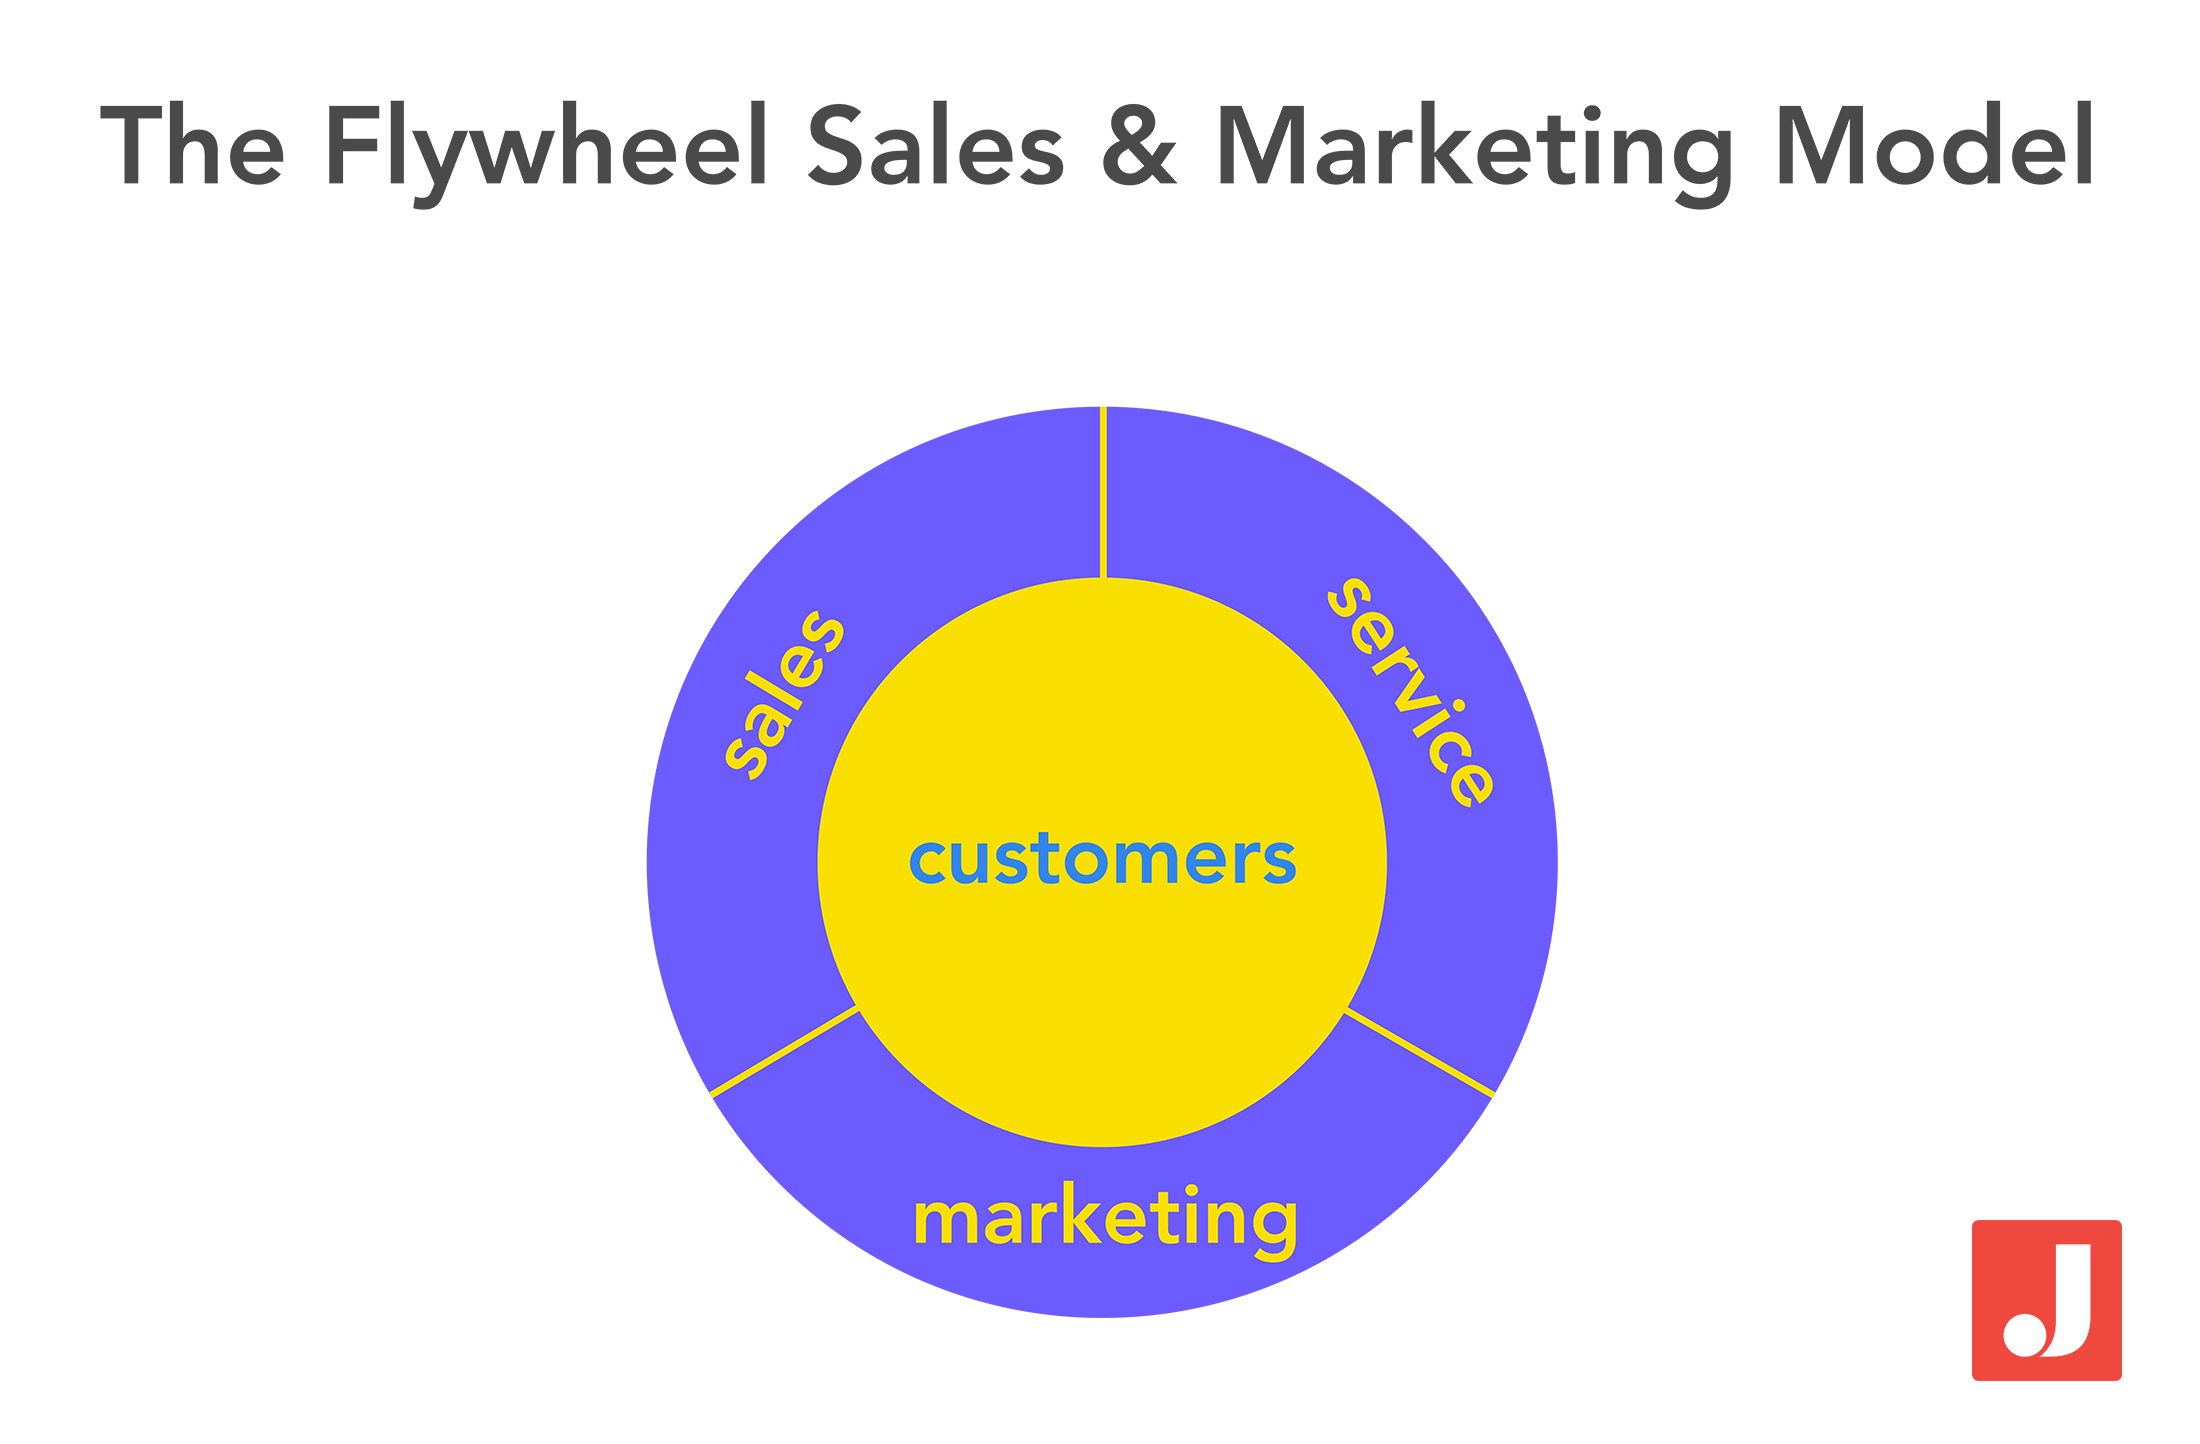 the flywheel sales and marketing model